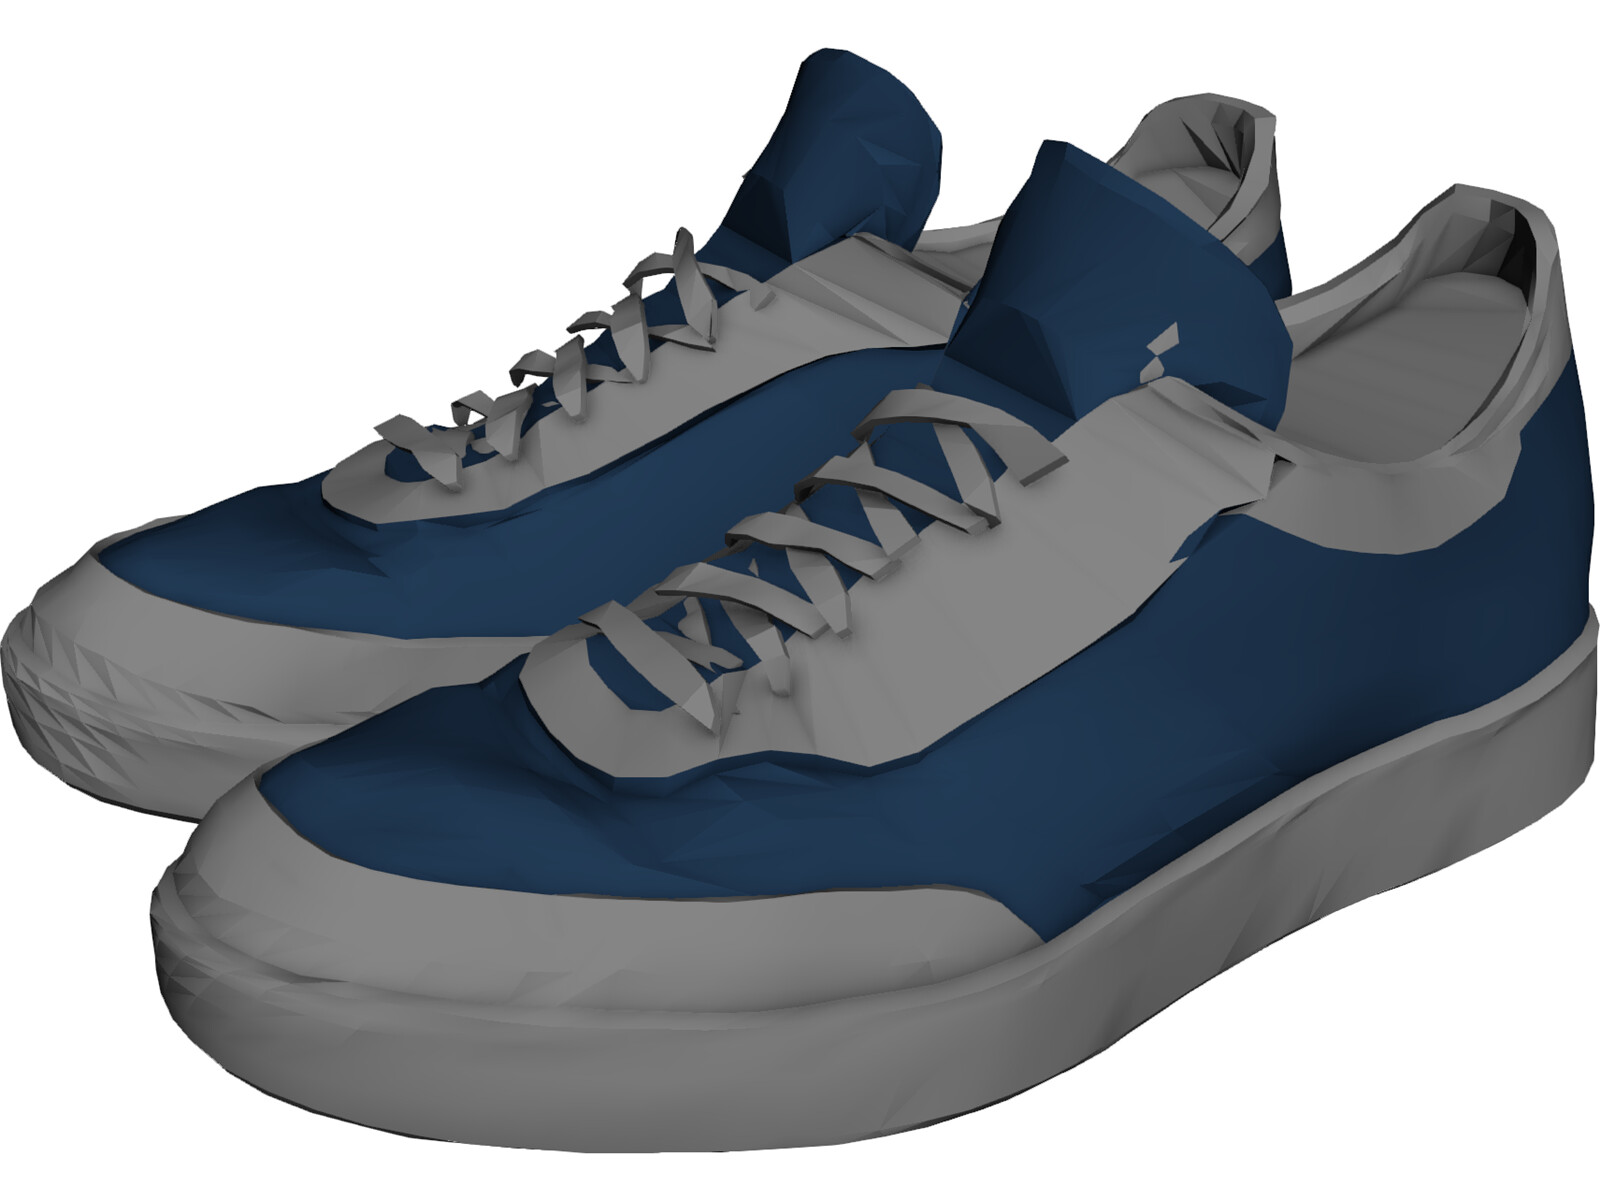 Mens shoes 3D Model